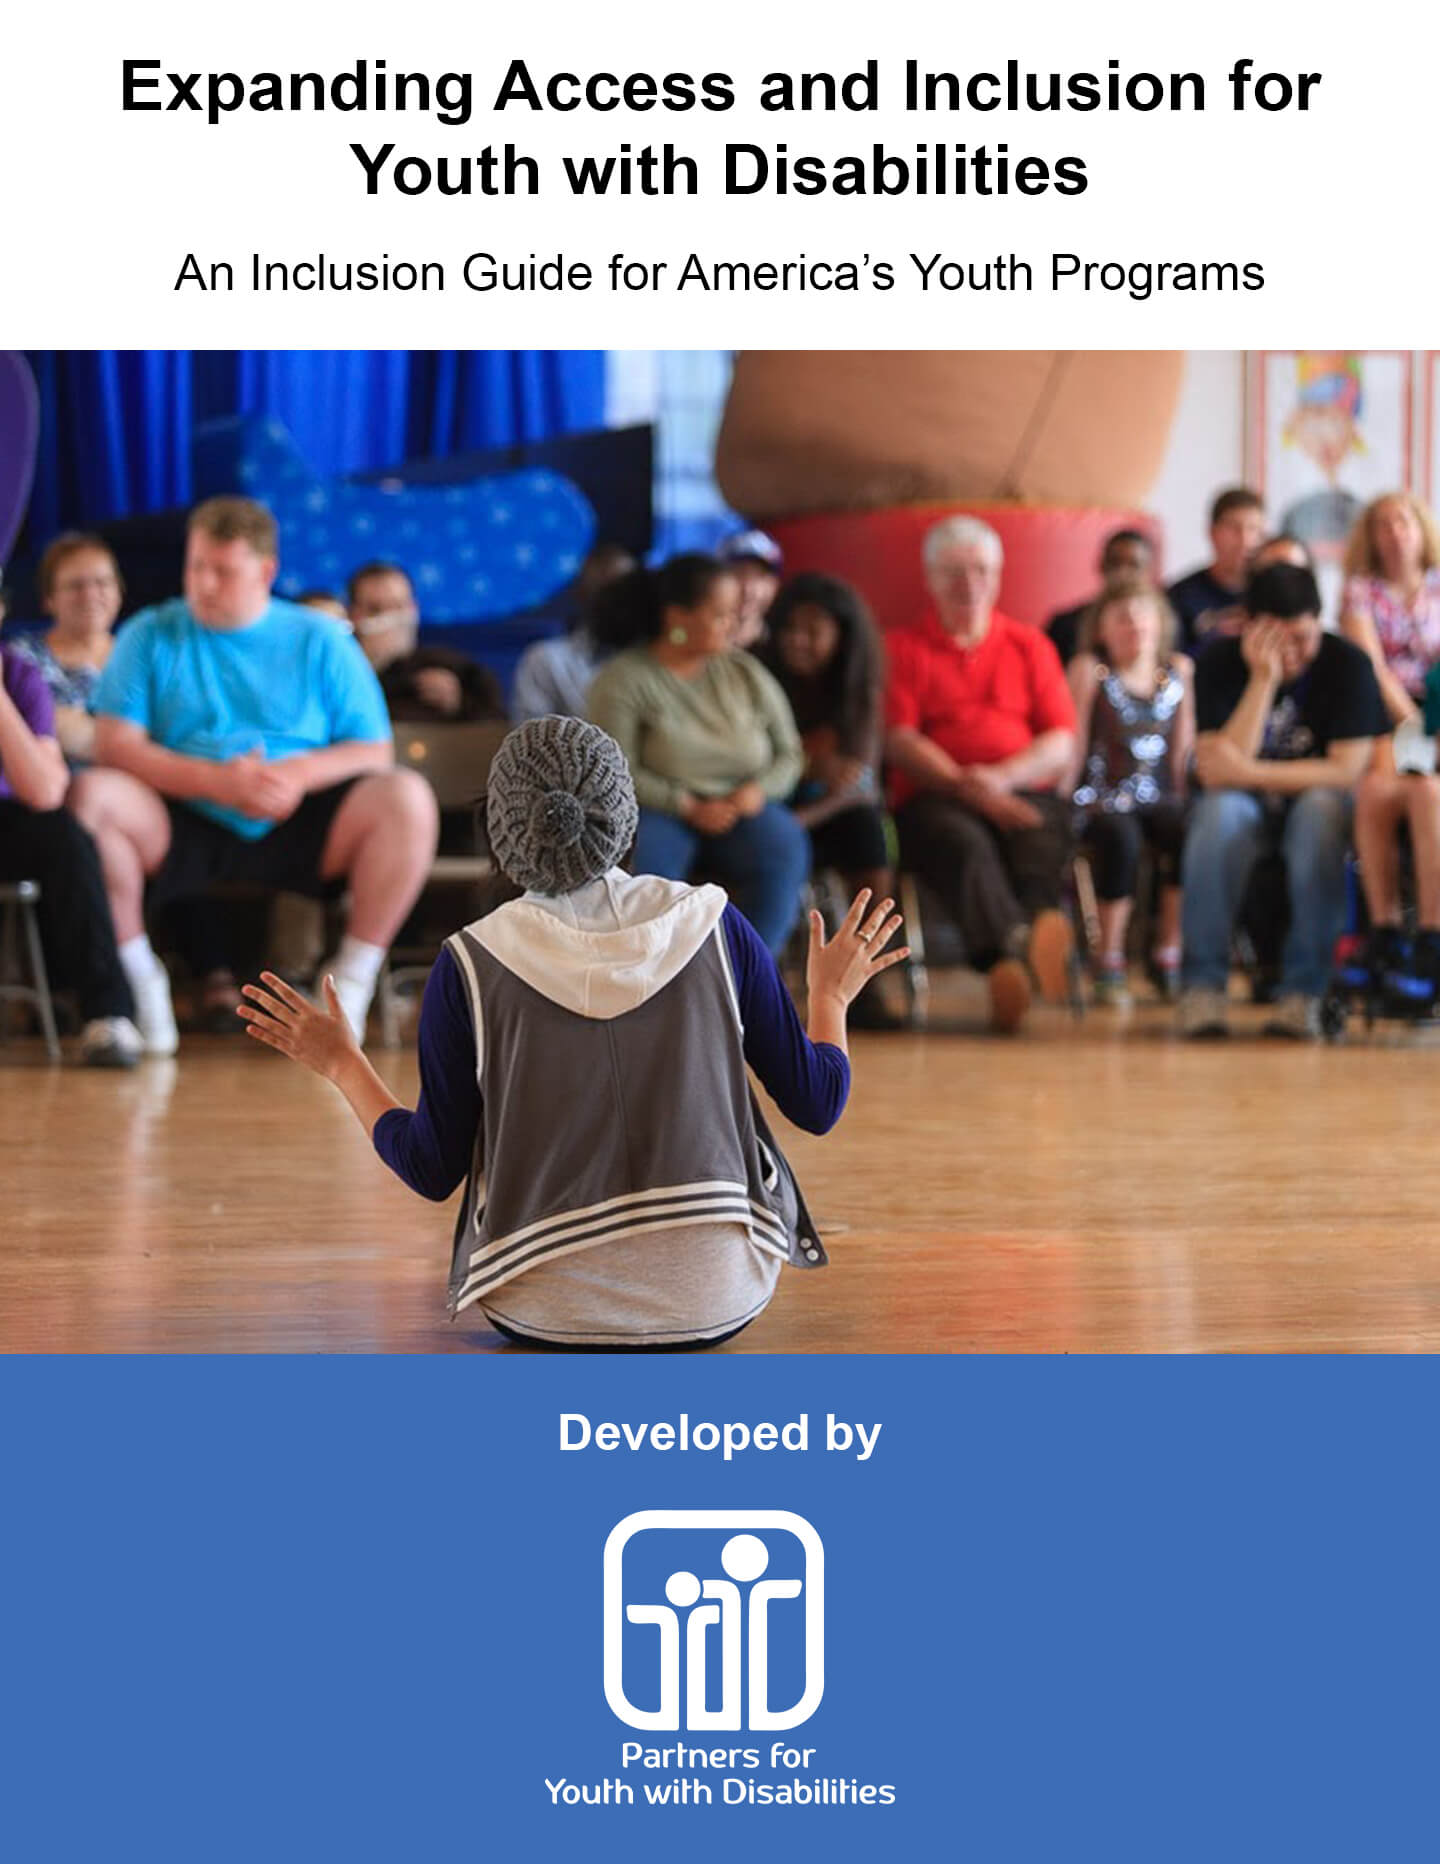 Expanding Access and Inclusion for Youth with Disabilities: An Inclusion Guide for America's Youth Programs